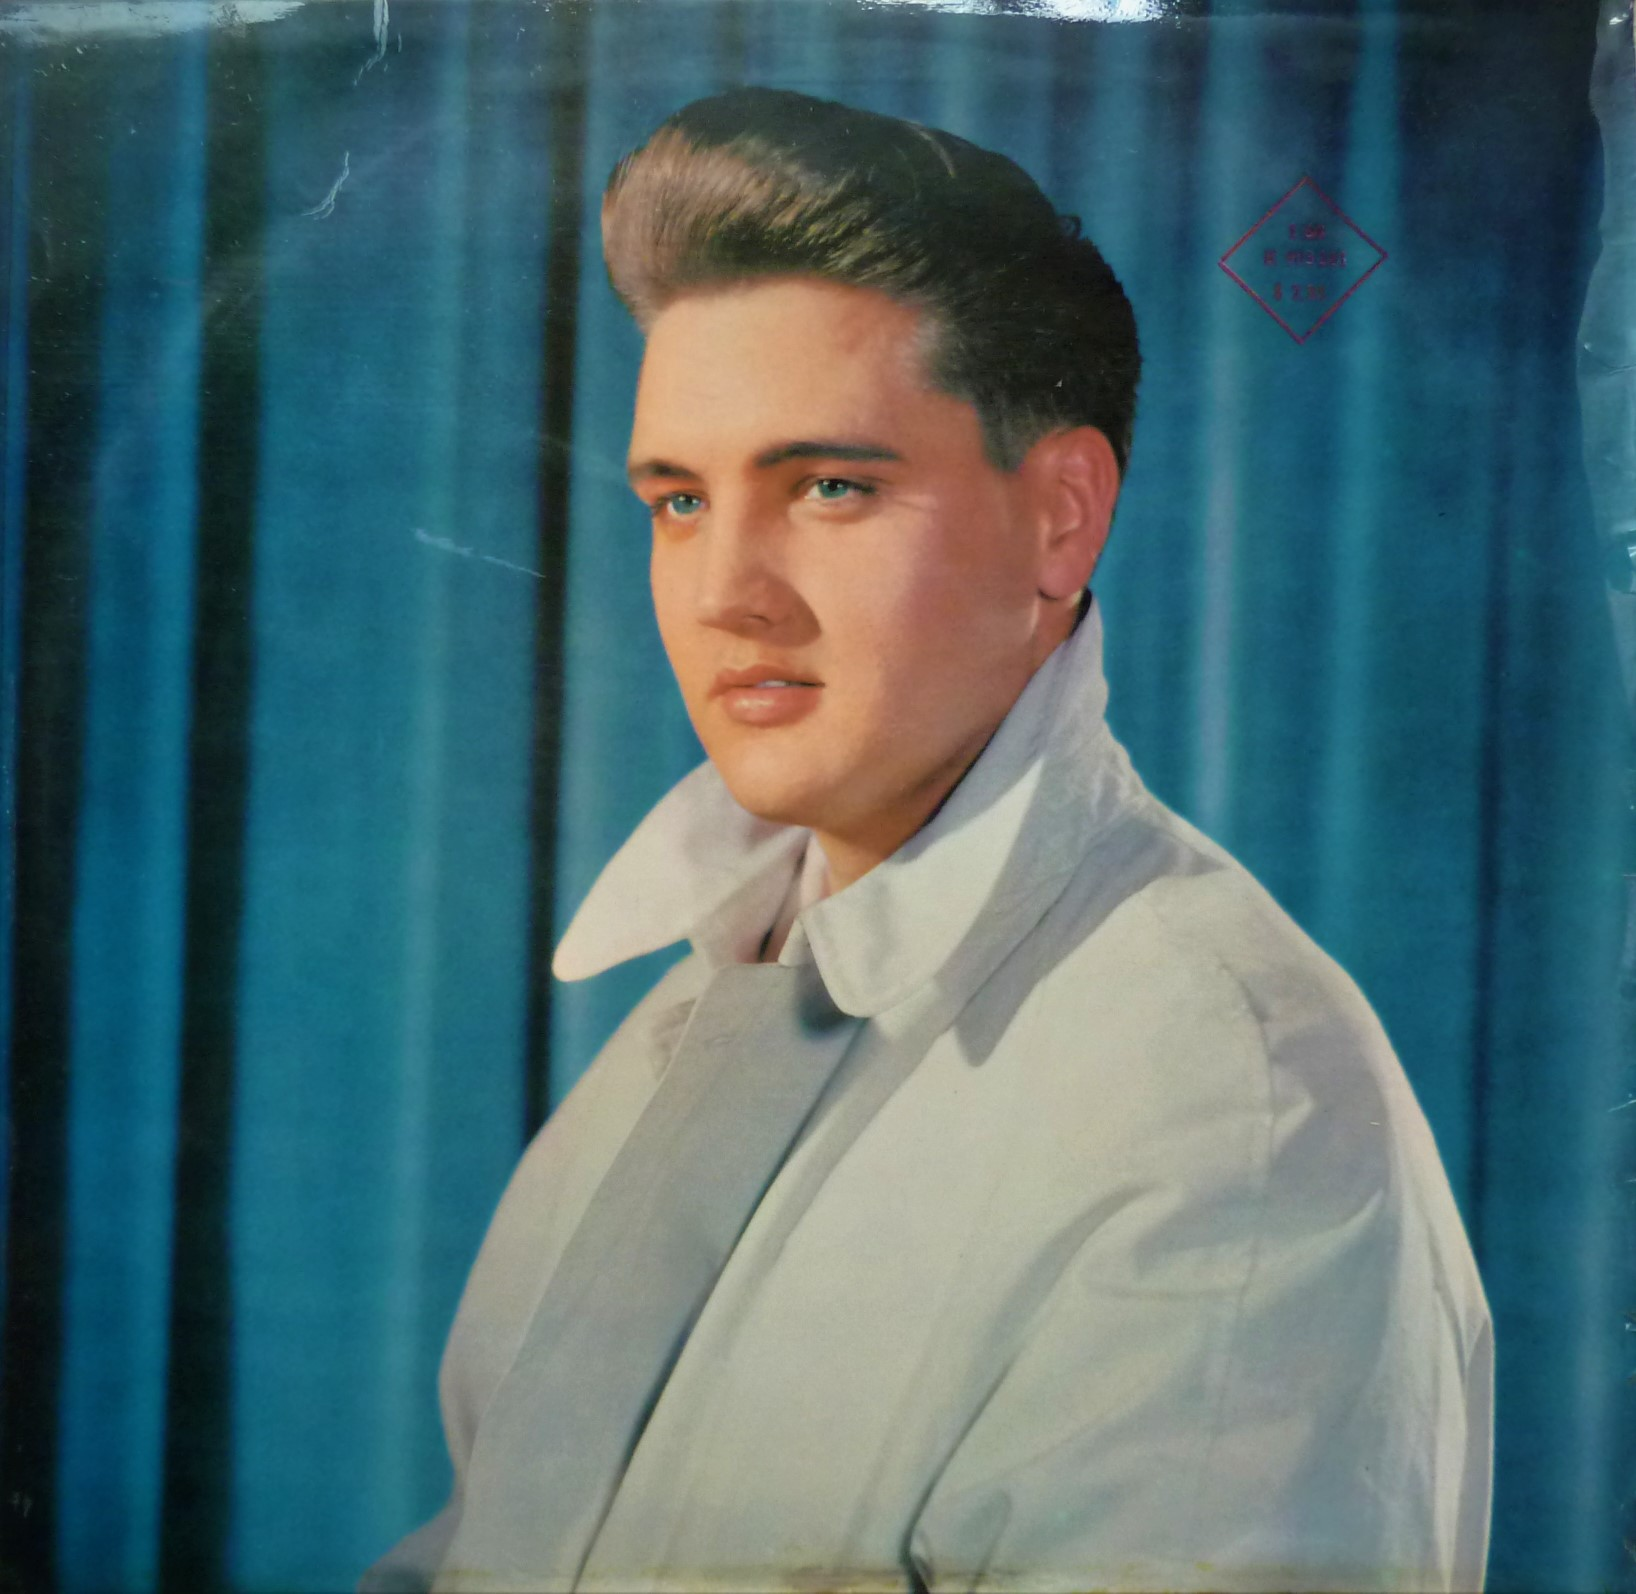 ELVIS' GOLD RECORDS VOL. 2 - 50.000.000 ELVIS FANS CAN´T BE WRONG Goldrecordsvol.21959rbnu20